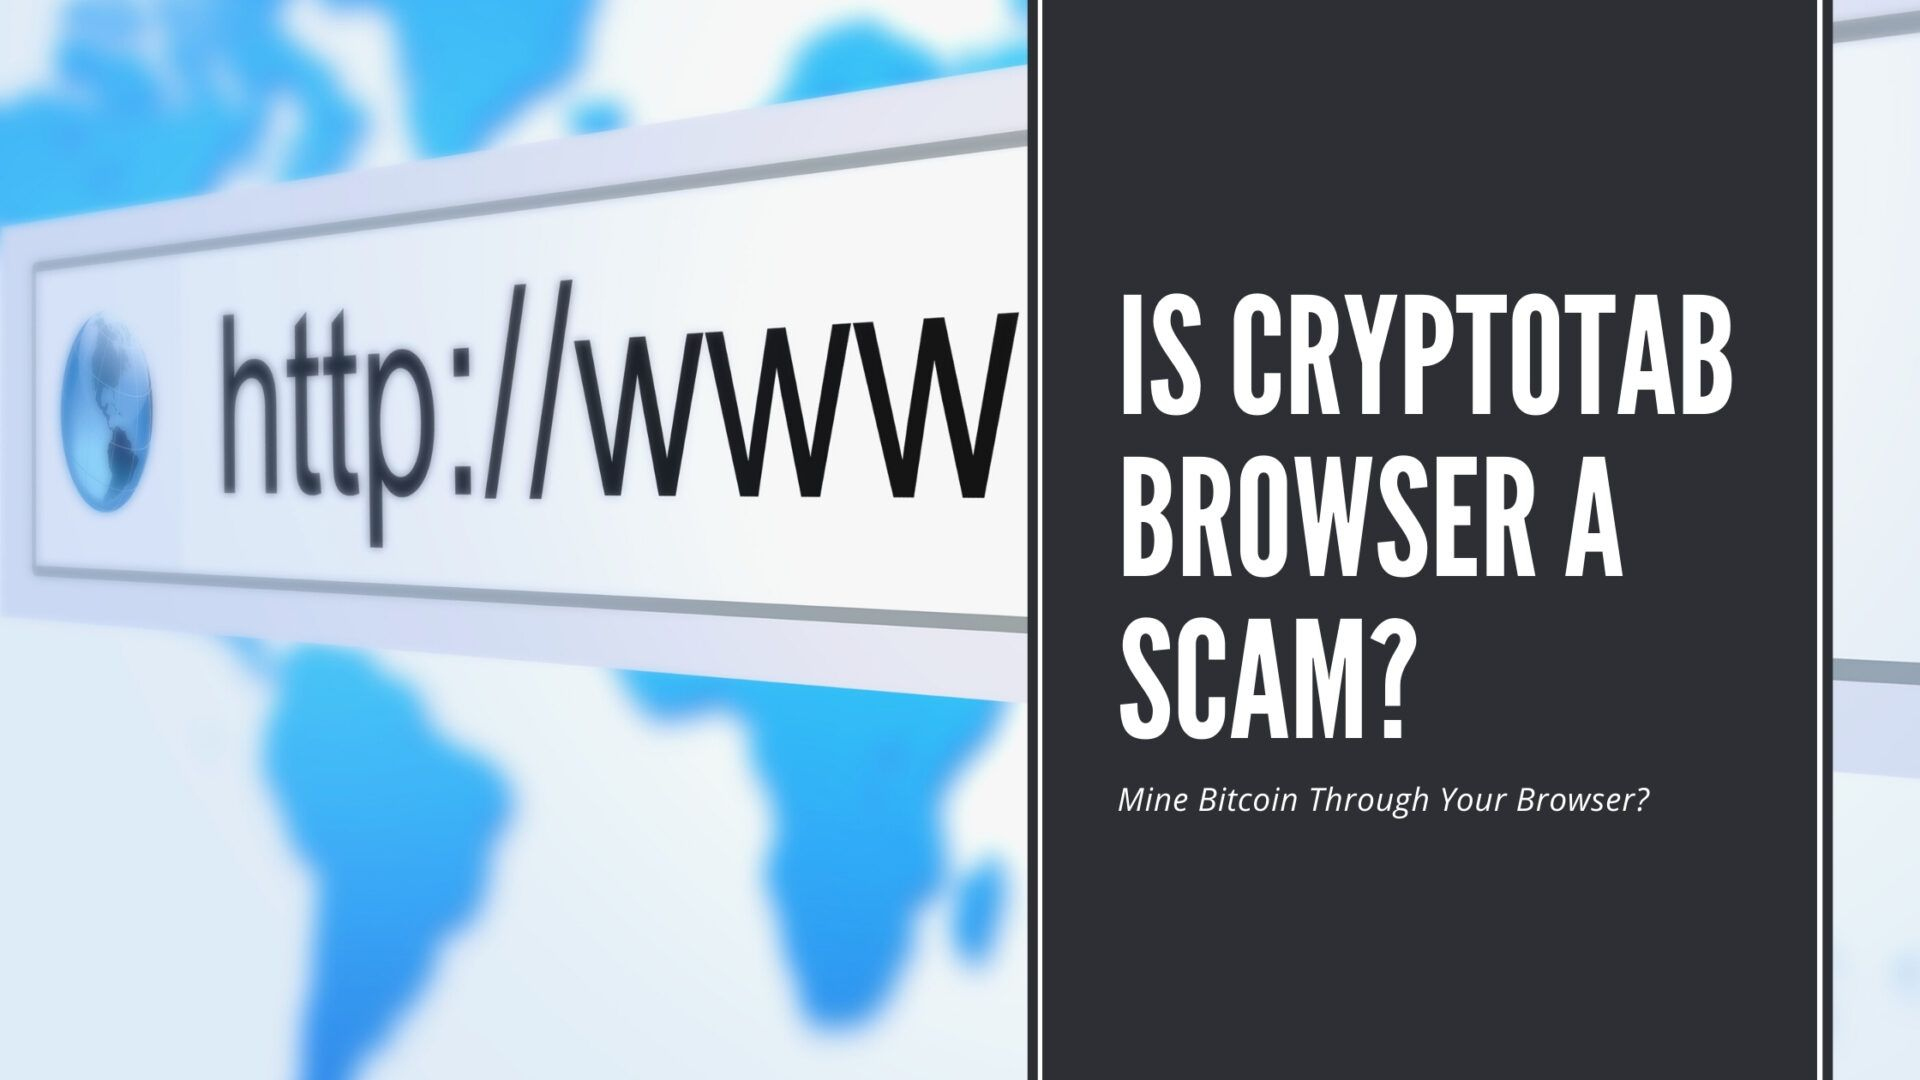 is cryptotab browser a scam